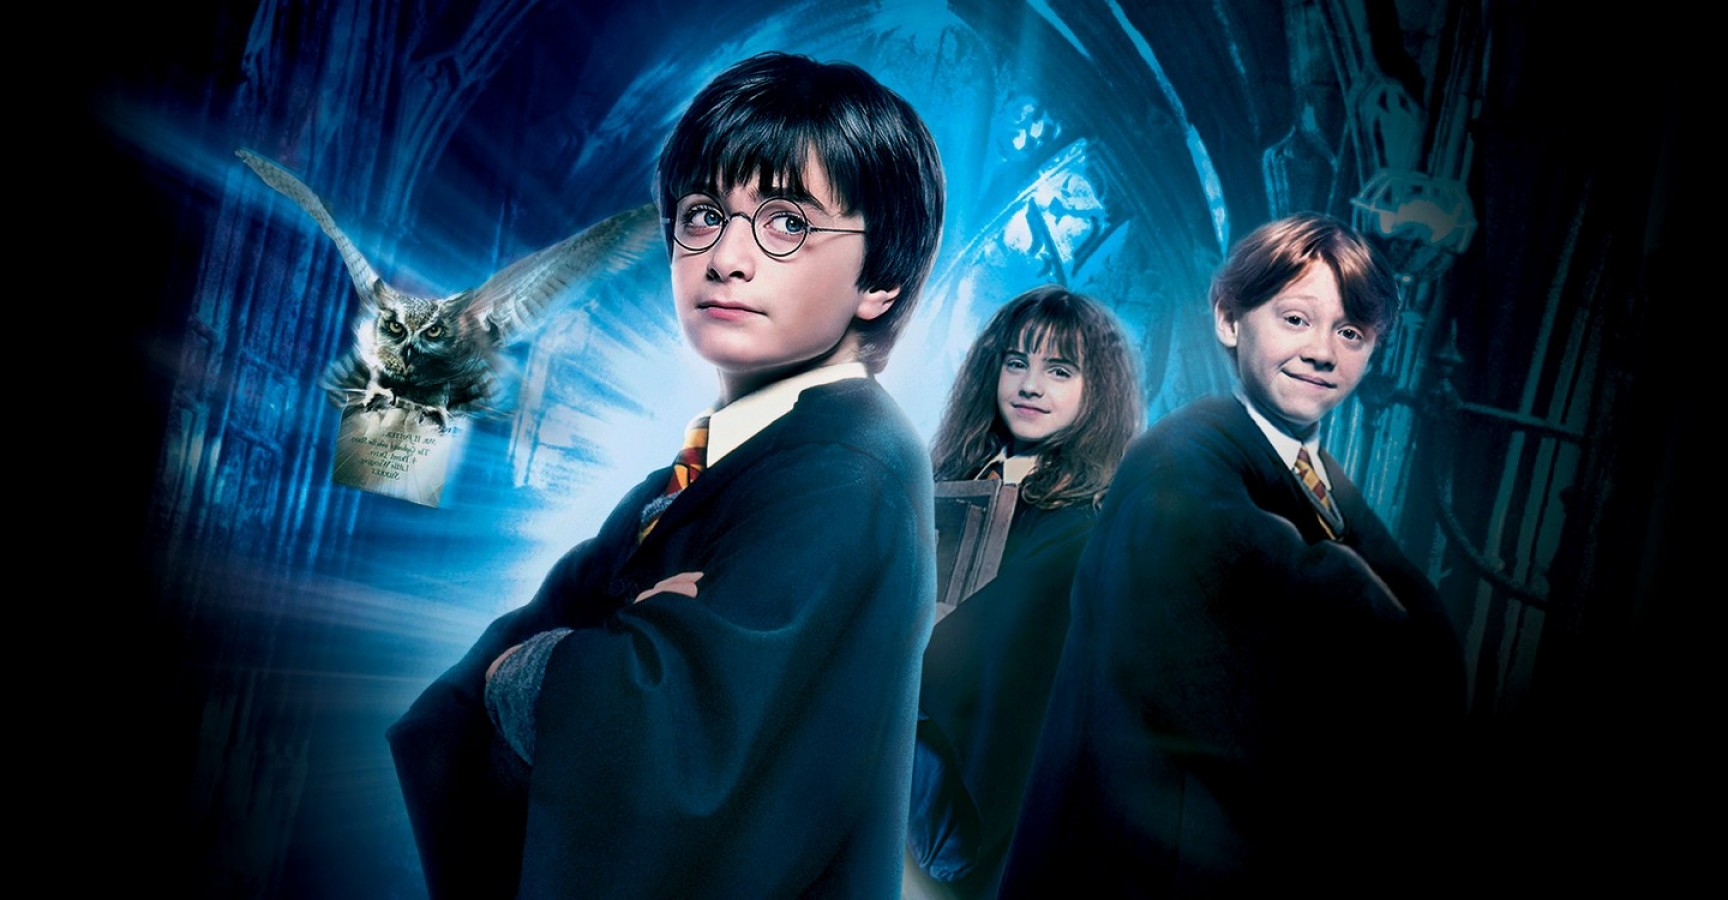 Septima Vector Young: Harry Potter And The Philosophers Stone